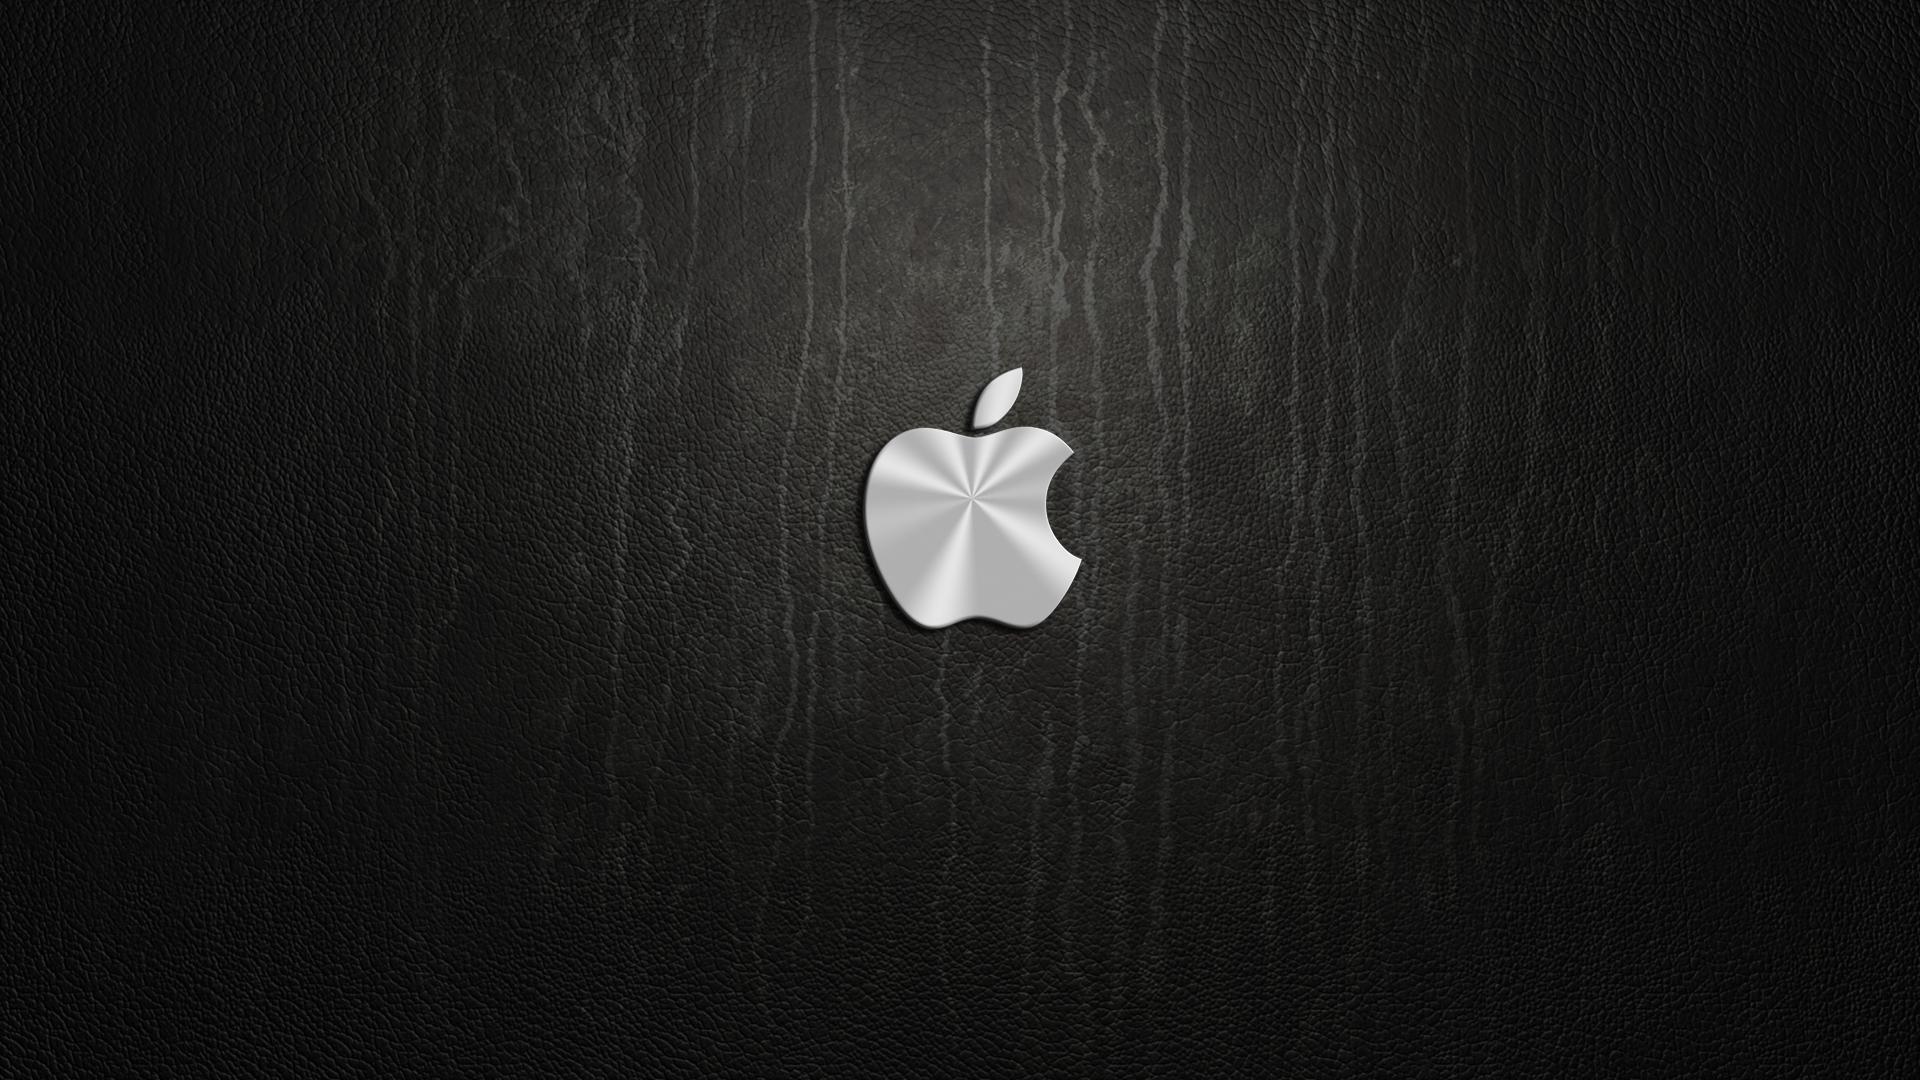 Apple hd wallpaper background image 1920x1080 id for Immagini apple hd